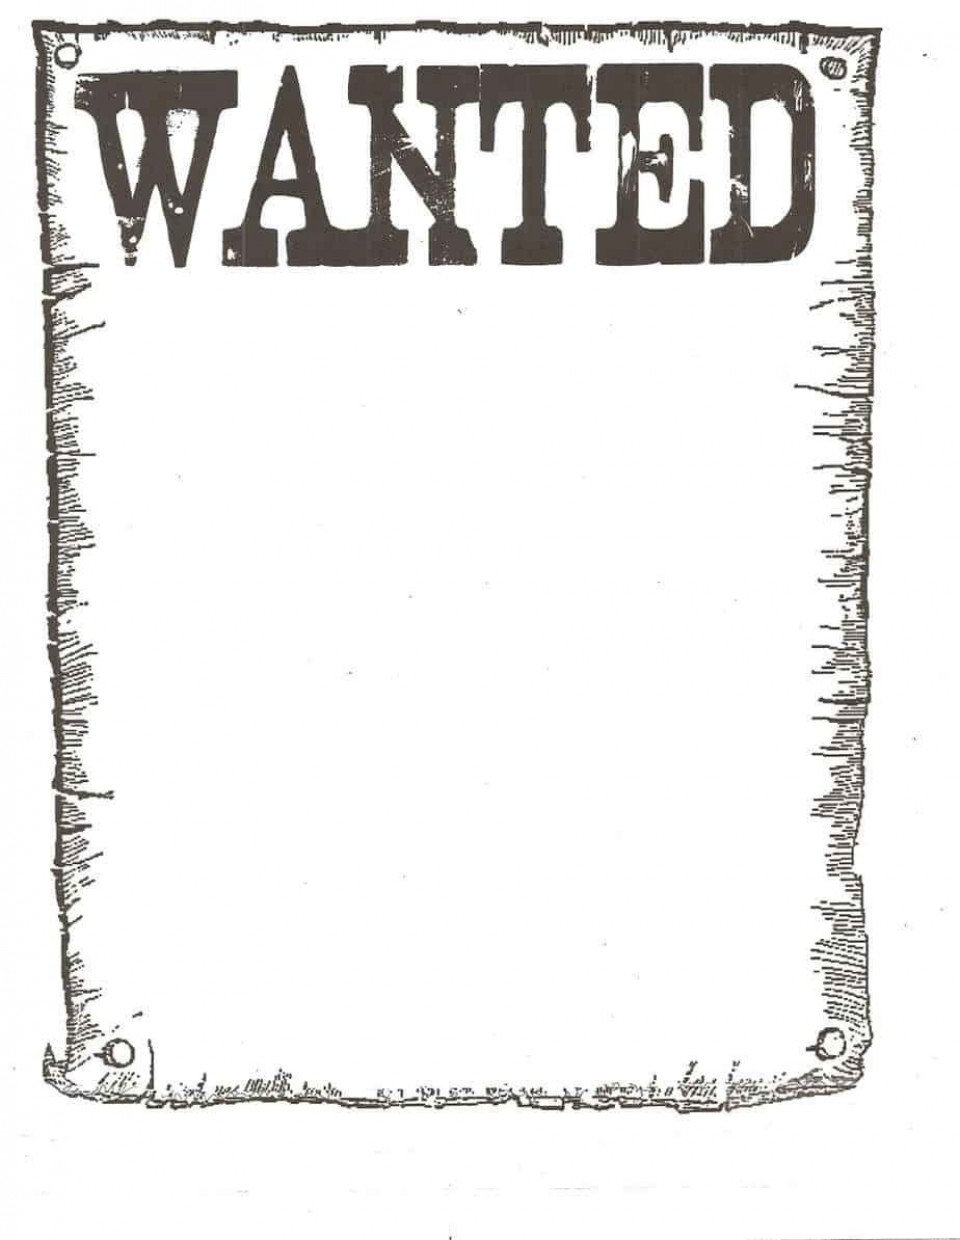 006 Awful Wanted Poster Template Microsoft Word High Resolution  Western Most960